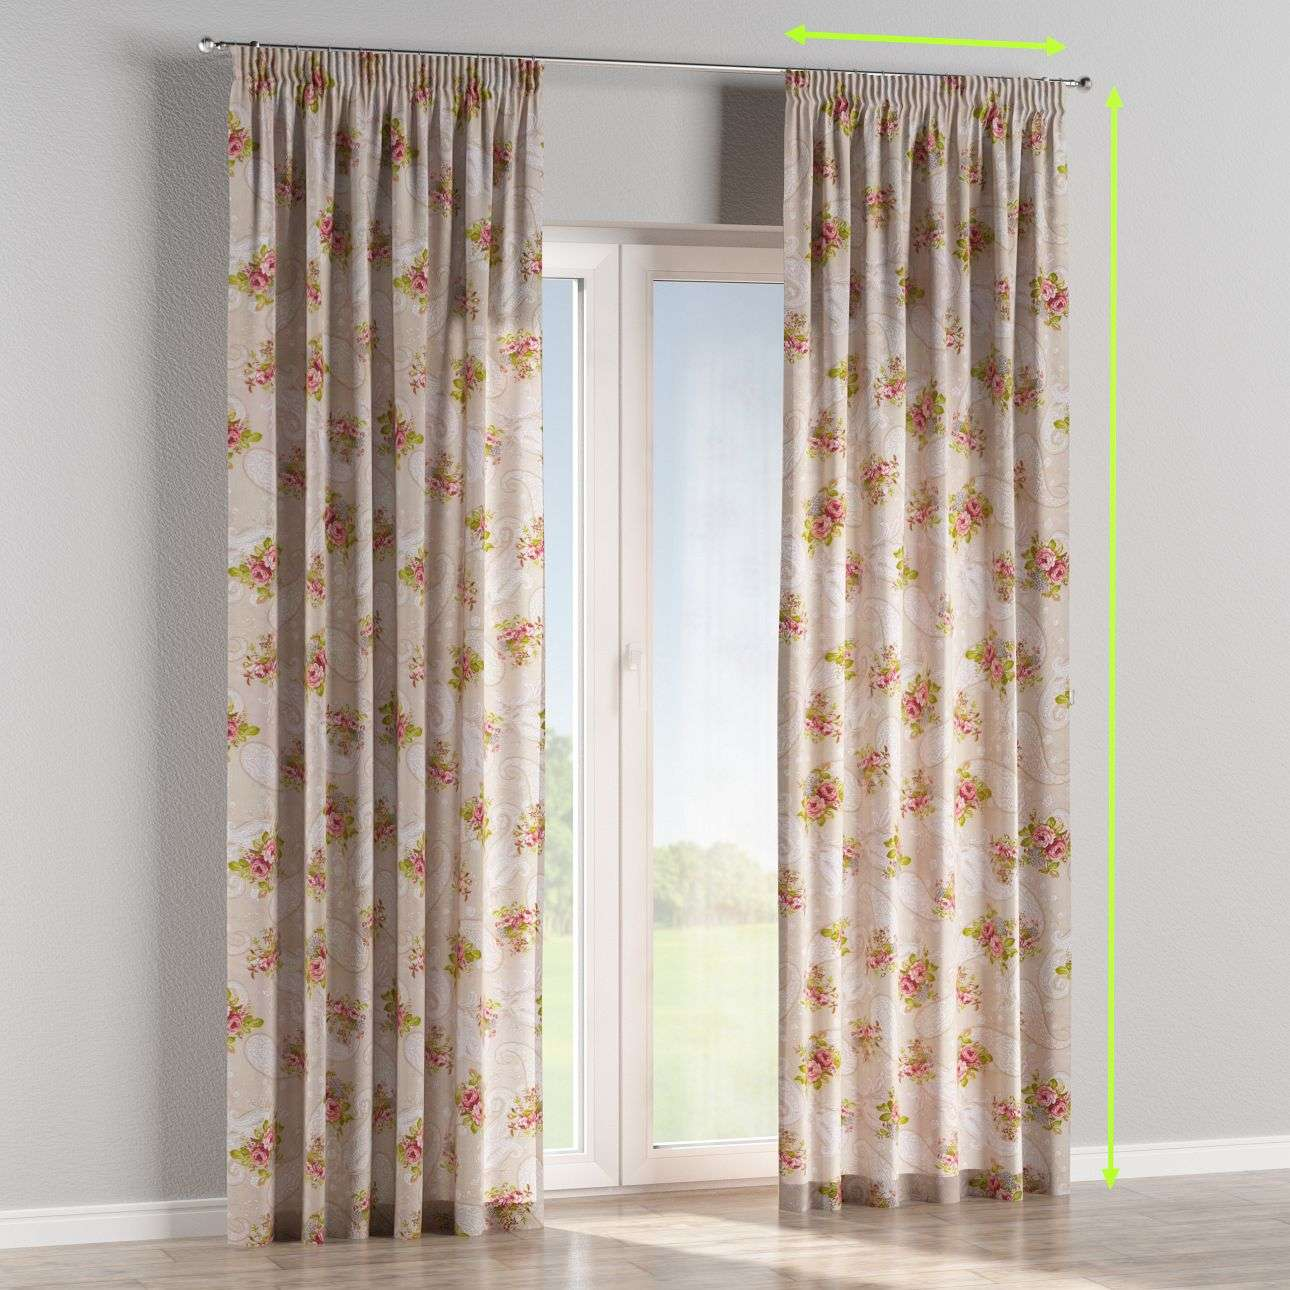 Pencil pleat lined curtains in collection Flowers, fabric: 311-15